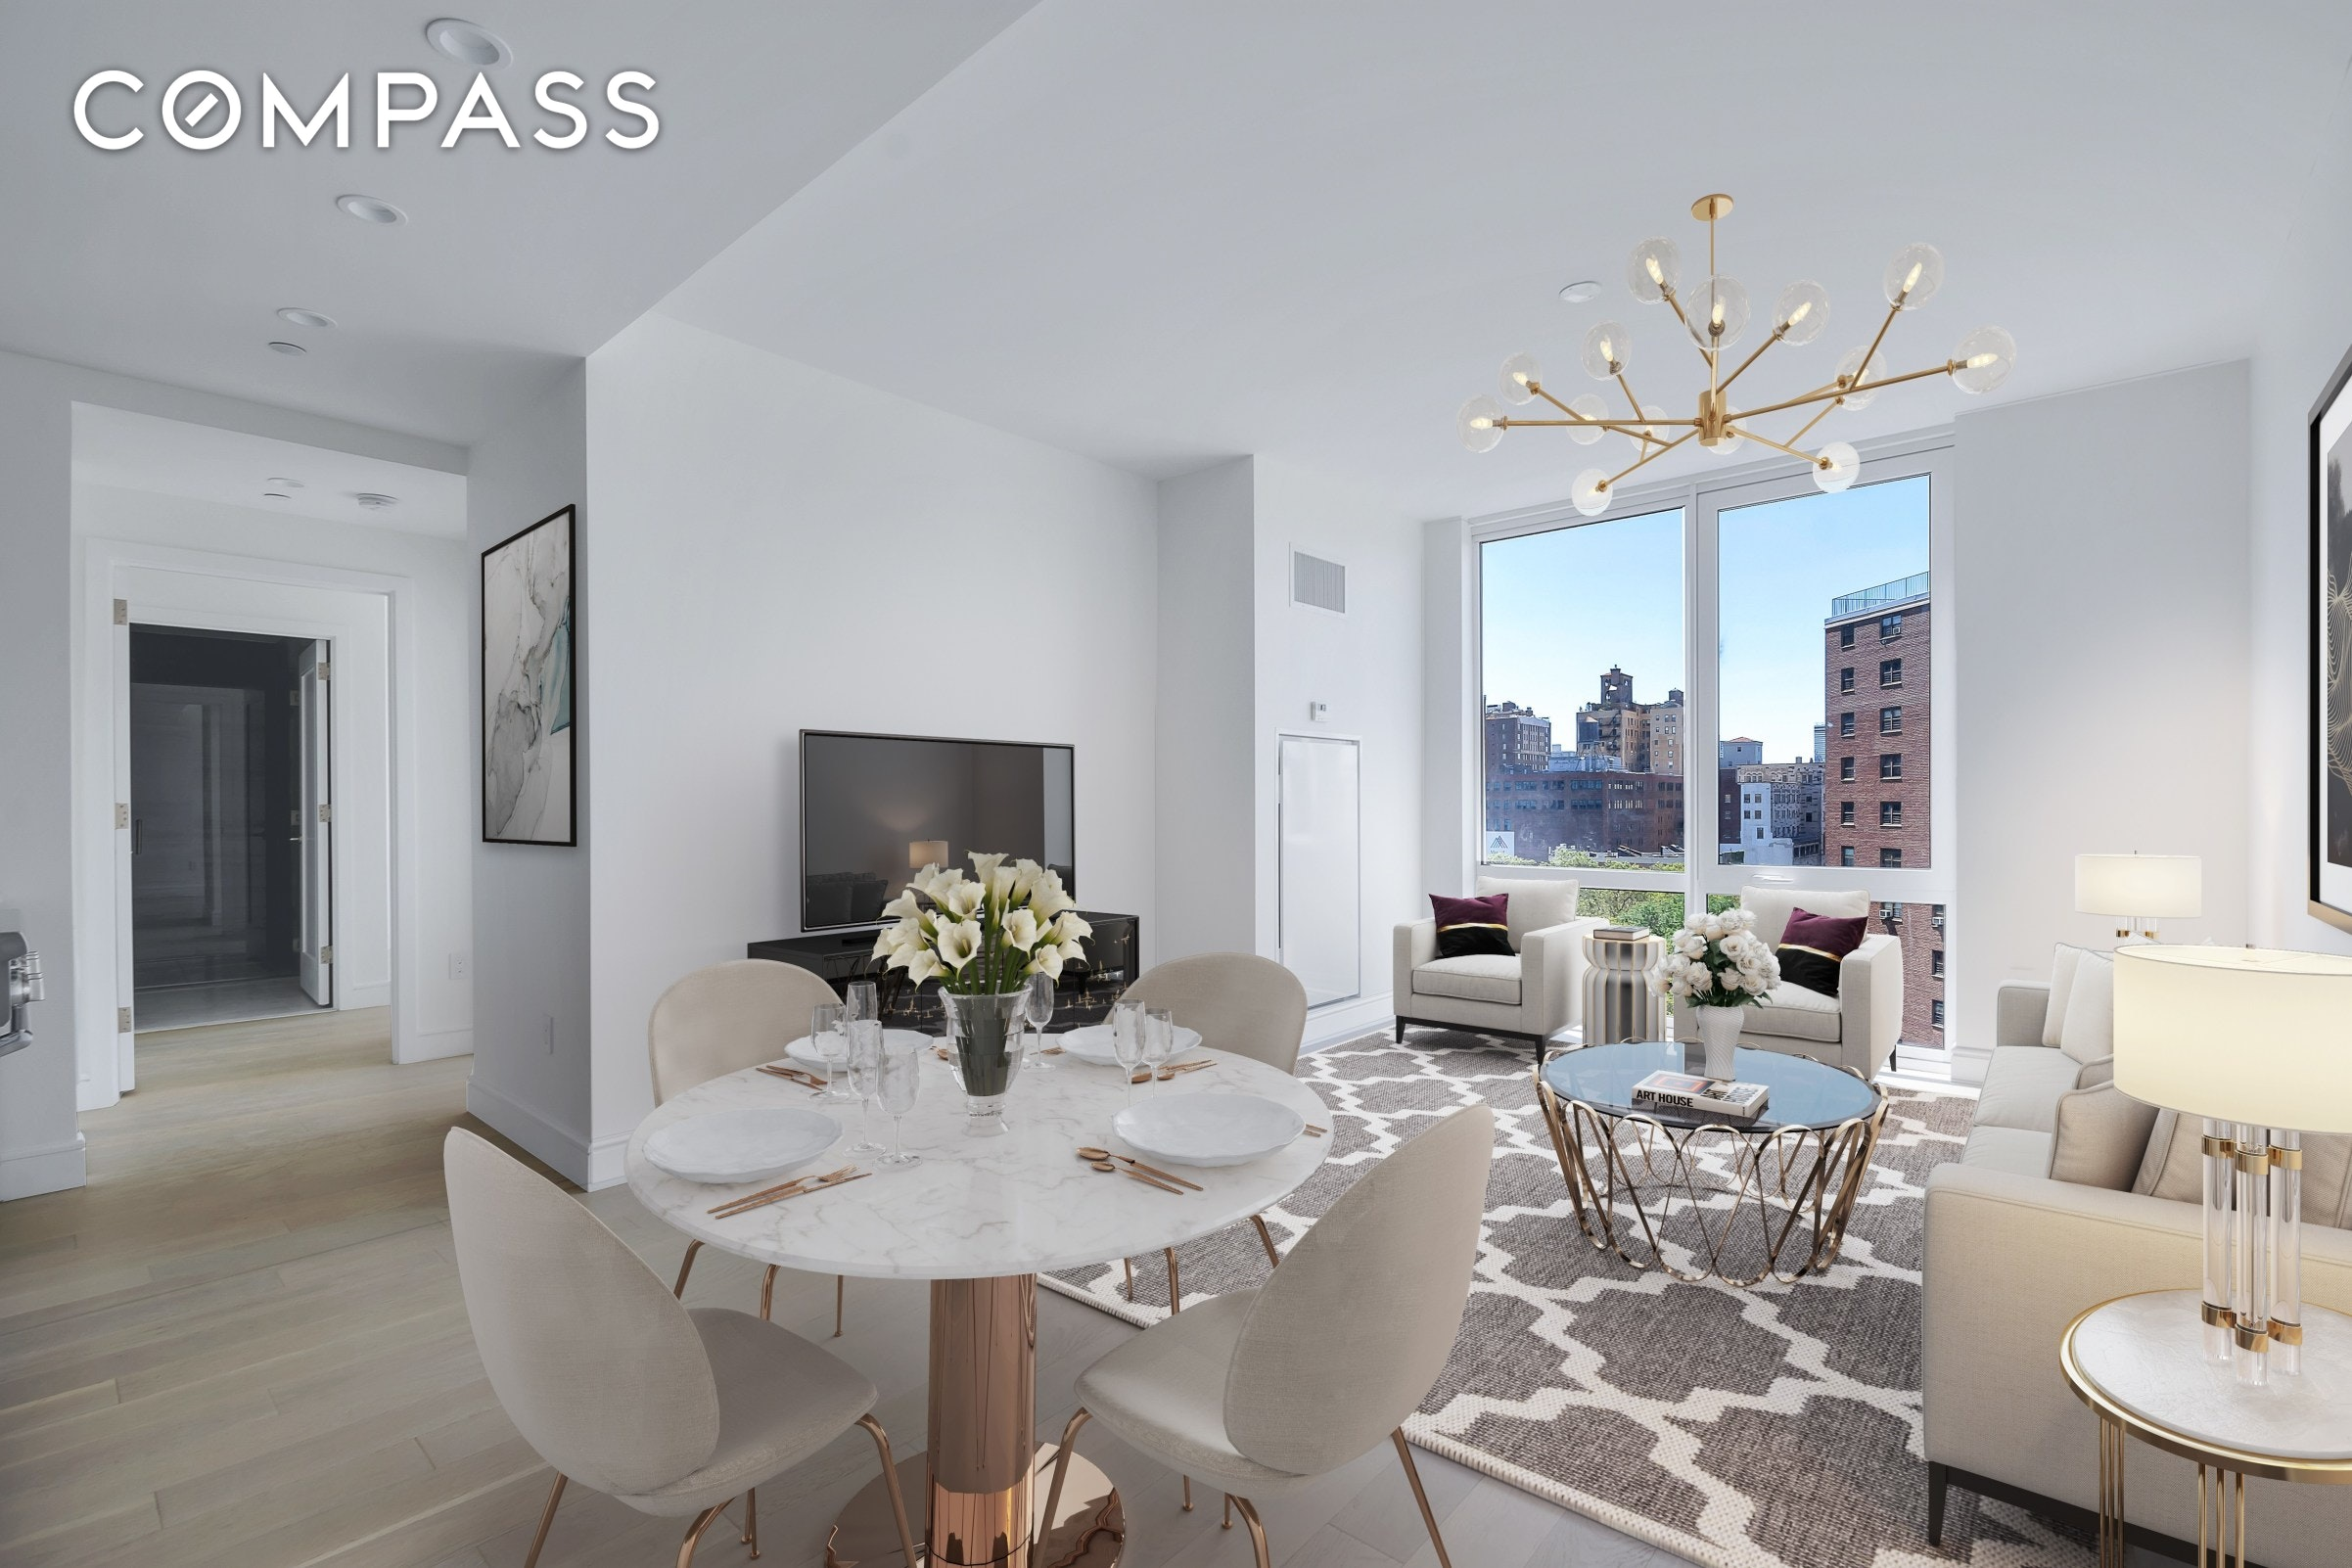 1399 Park Avenue, Apt 7-B, Manhattan, New York 10029